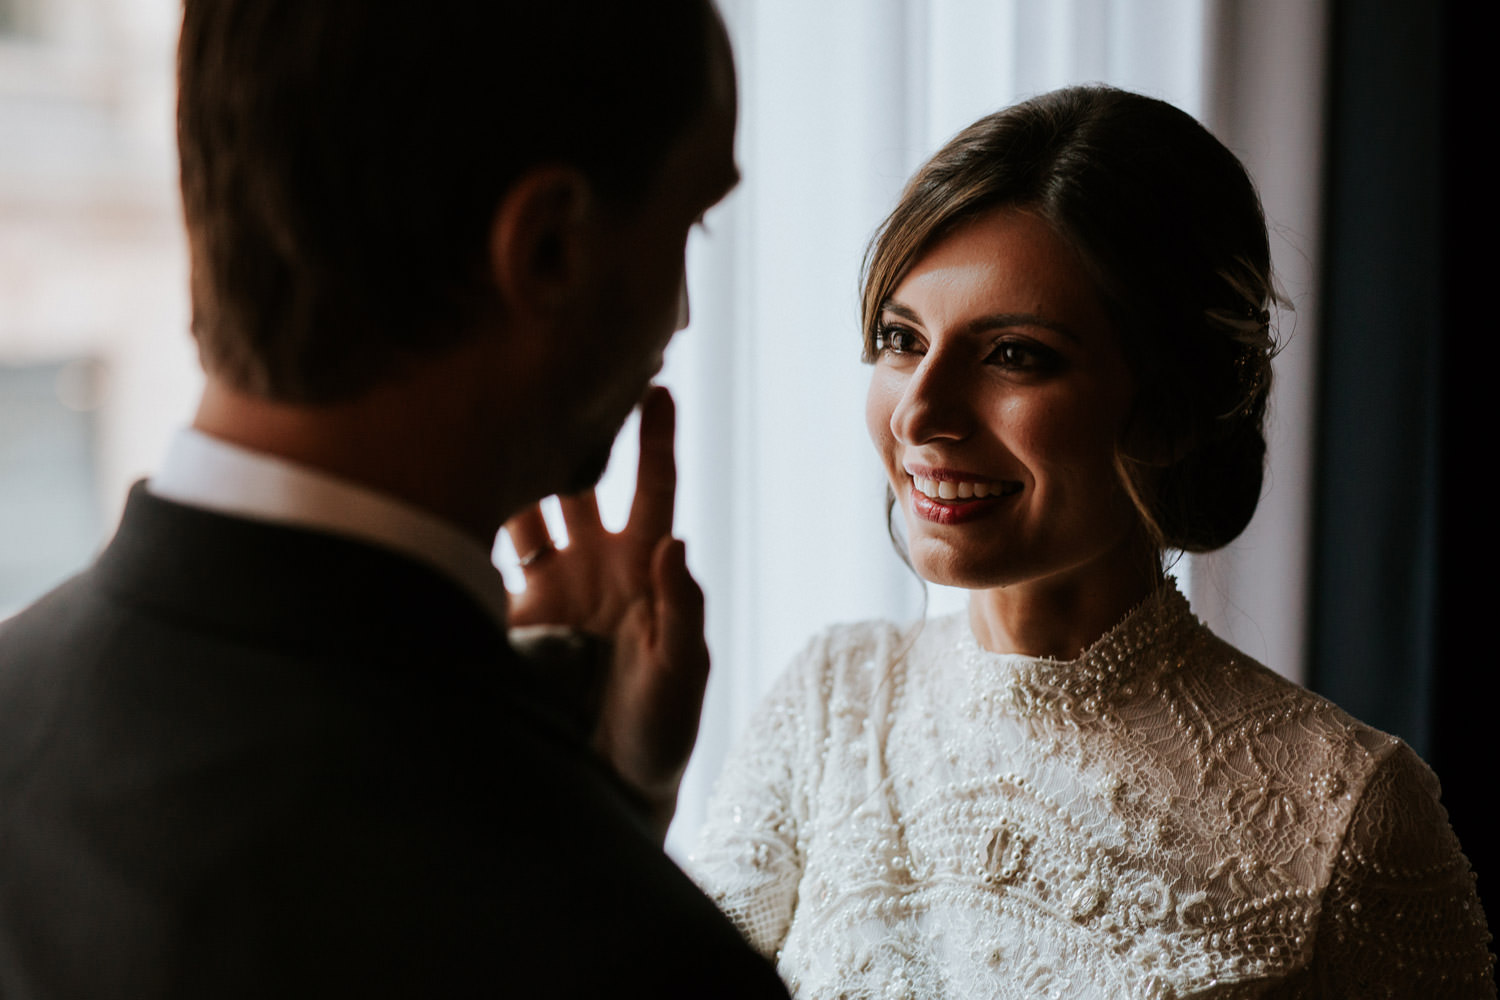 an photograph of the bride touching the face of the groom during the portrait session at the gray hotel